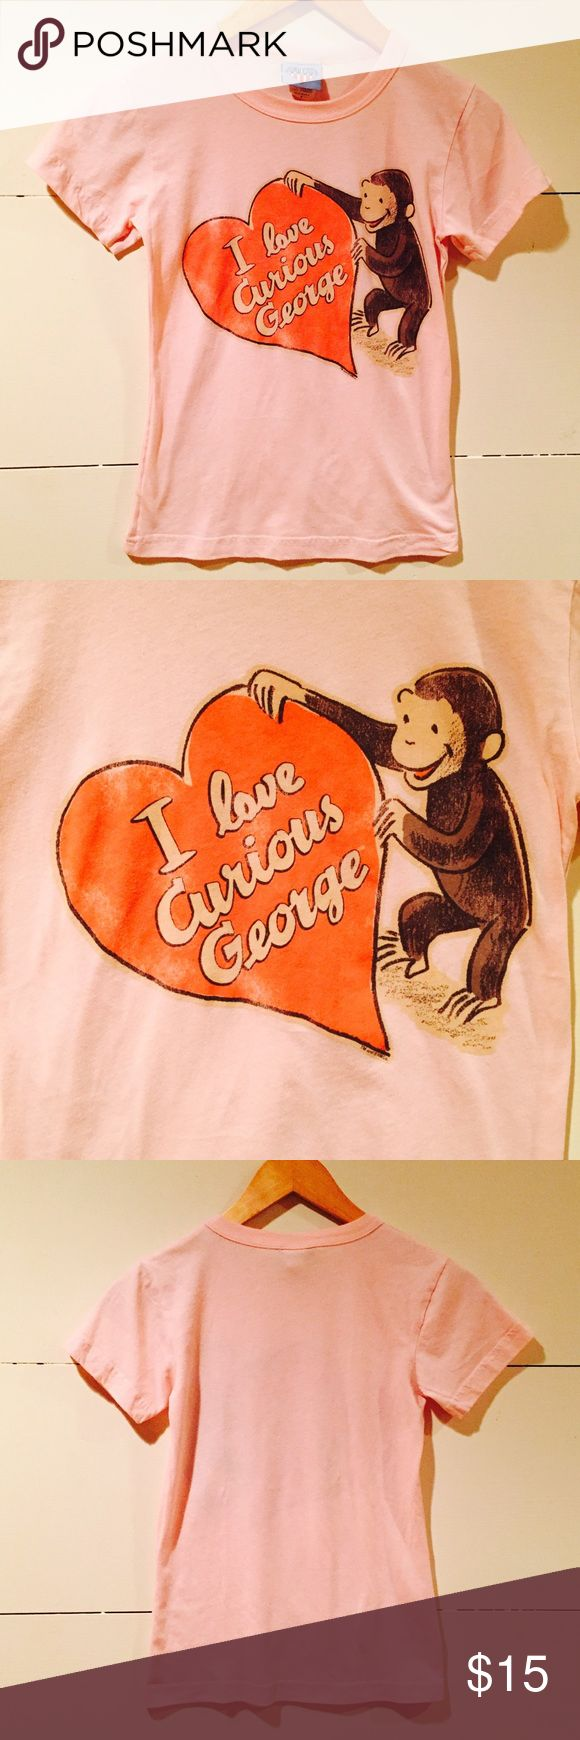 Curious George Junk Food Tee Shirt In good condition. Junk Food's I love Curious George tee shirt. Soft and stretchy material 50% cotton 50% polyester. Size small Junk Food Clothing Tops Tees - Short Sleeve